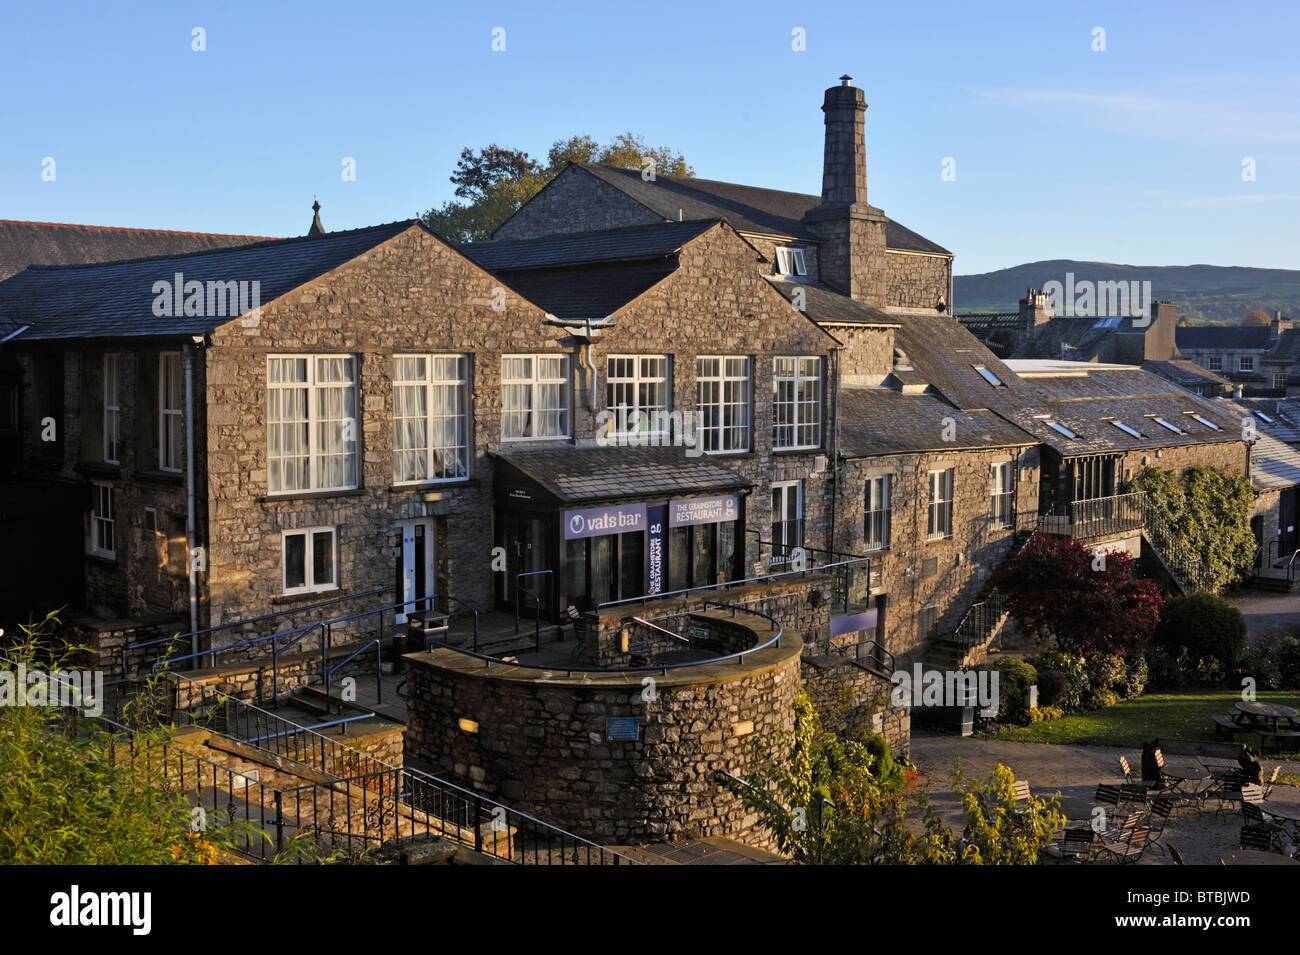 Vats Bar and the Grainstore Restaurant. The Brewery Arts Centre, Highgate, Kendal, Cumbria, England, United Kingdom, - Stock Image